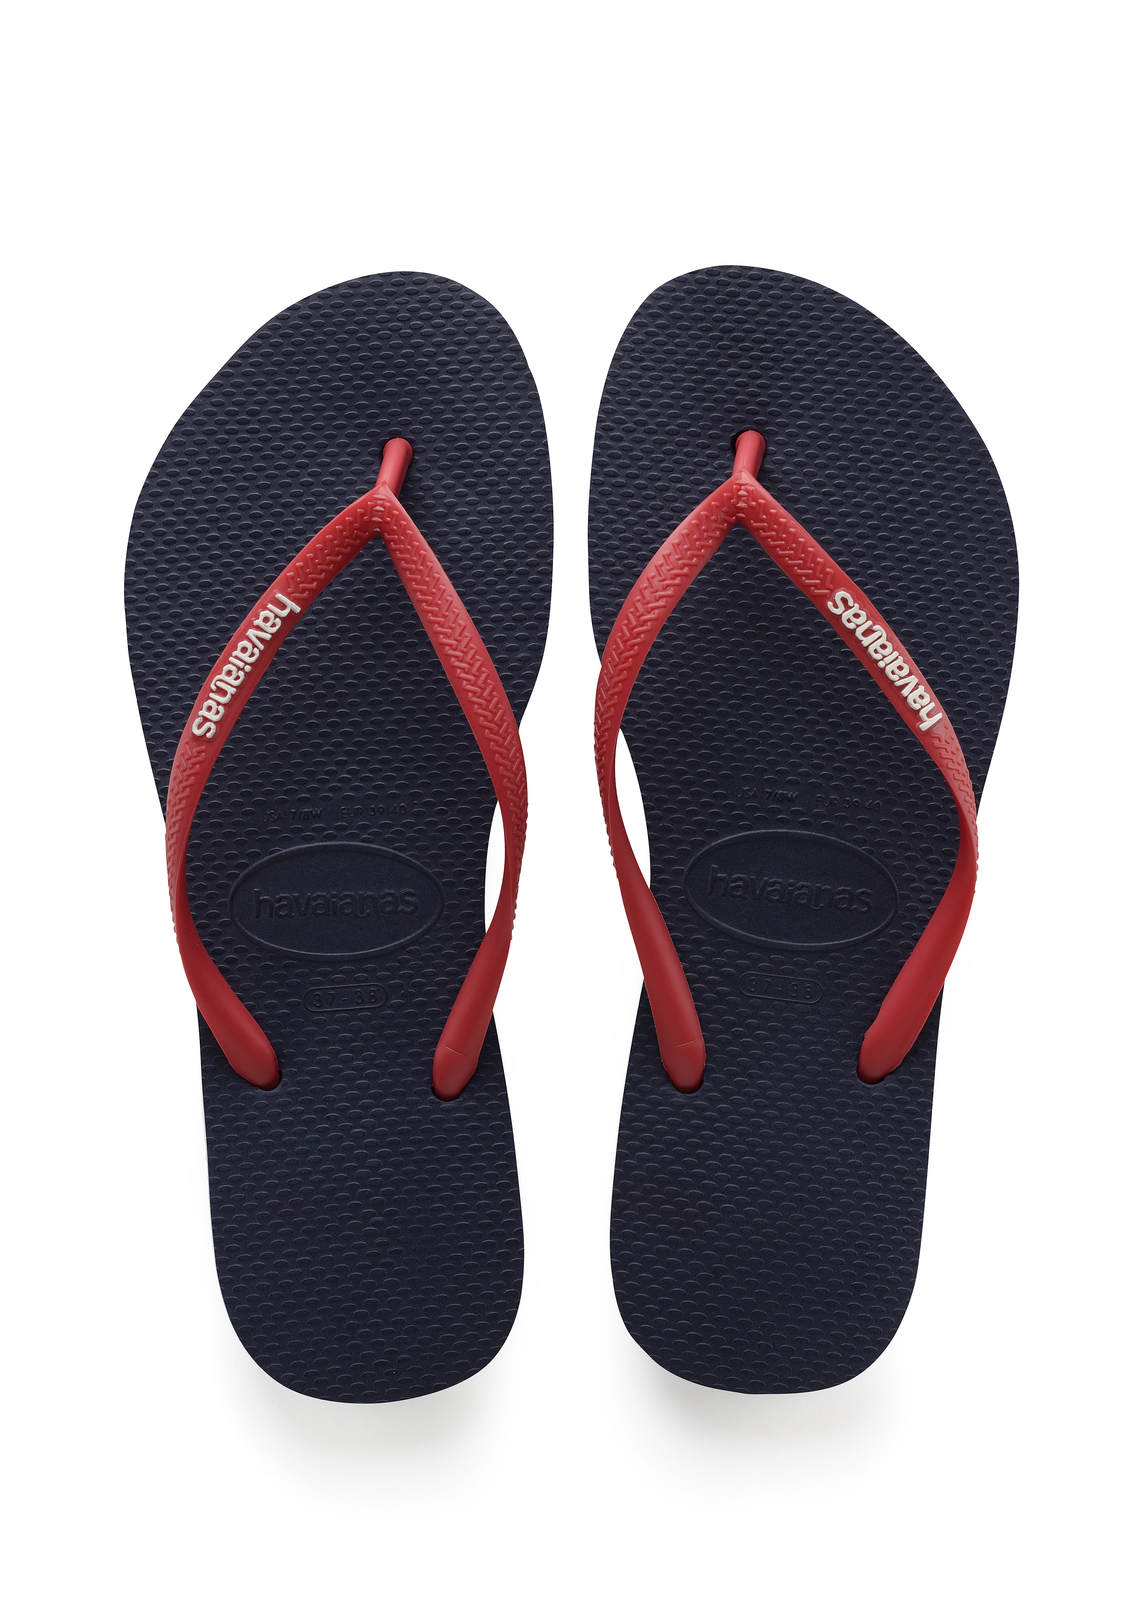 189ed9aed Havaianas Slim Pop Up Logo Navy Blue Ruby Red Thongs - Tentworld